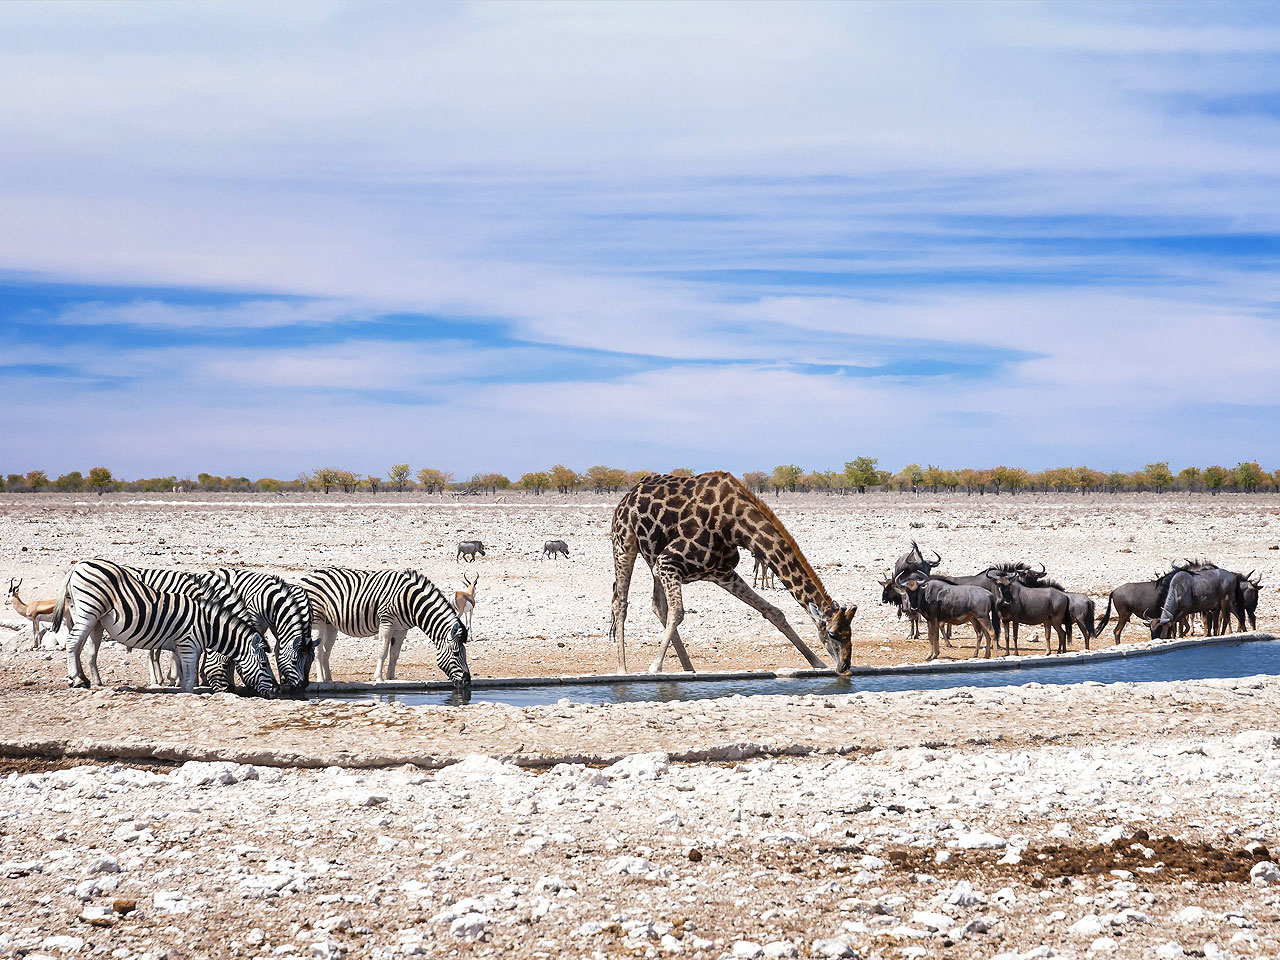 Zebras and a giraffe drinking at a waterhole in Etosha with wildebeest and warthogs nearby.